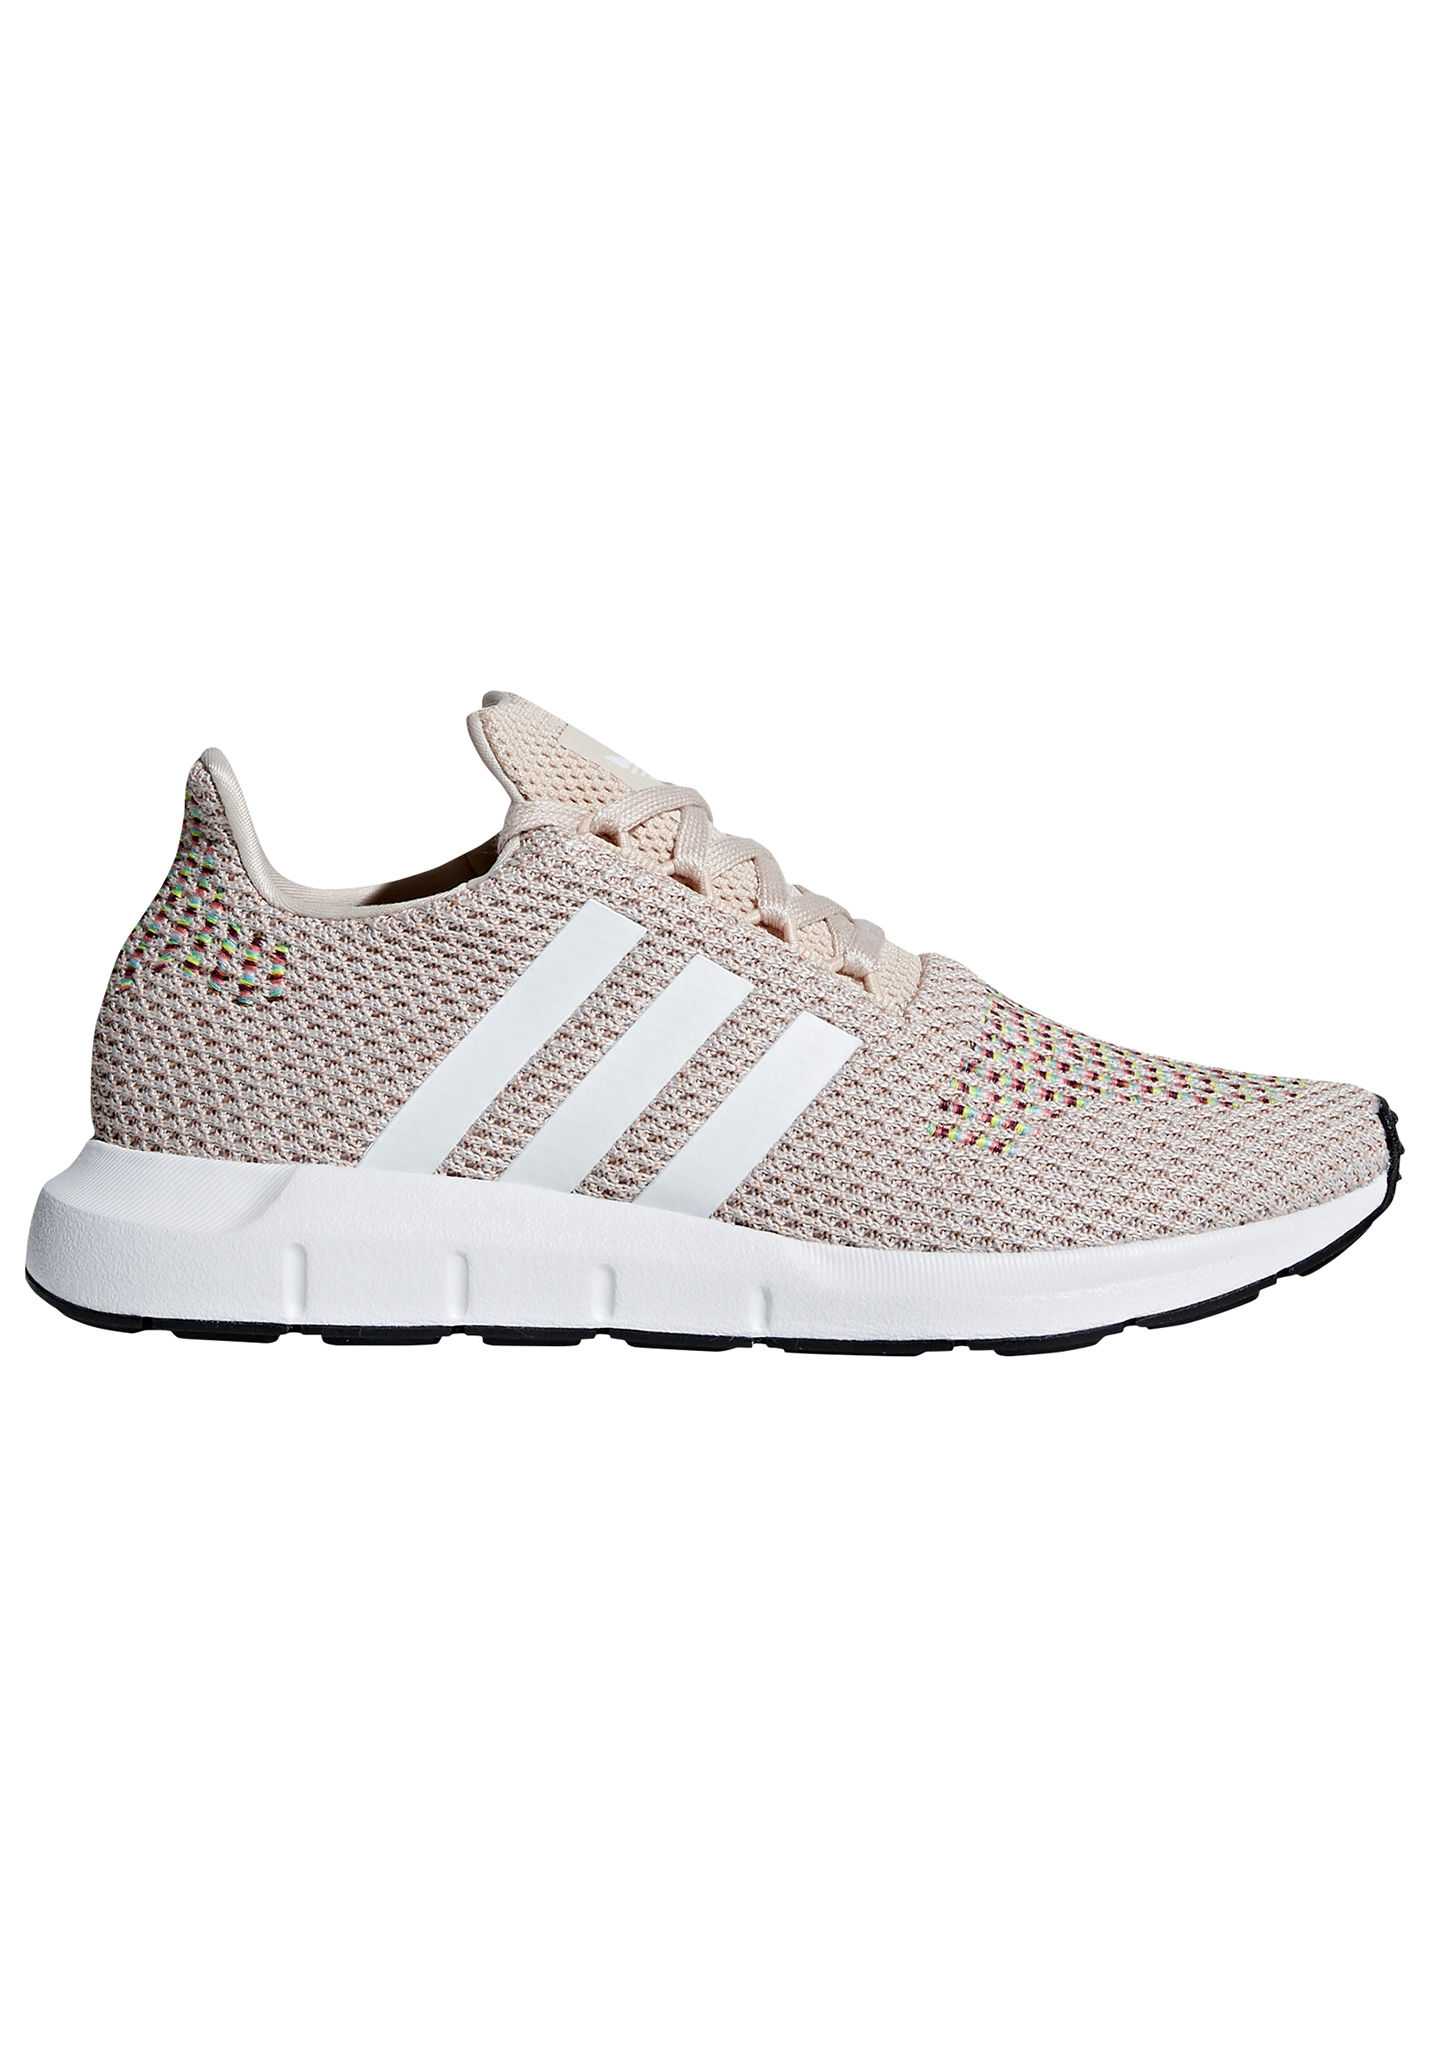 adidas Originals Swift Run - Sneaker für Damen - Beige